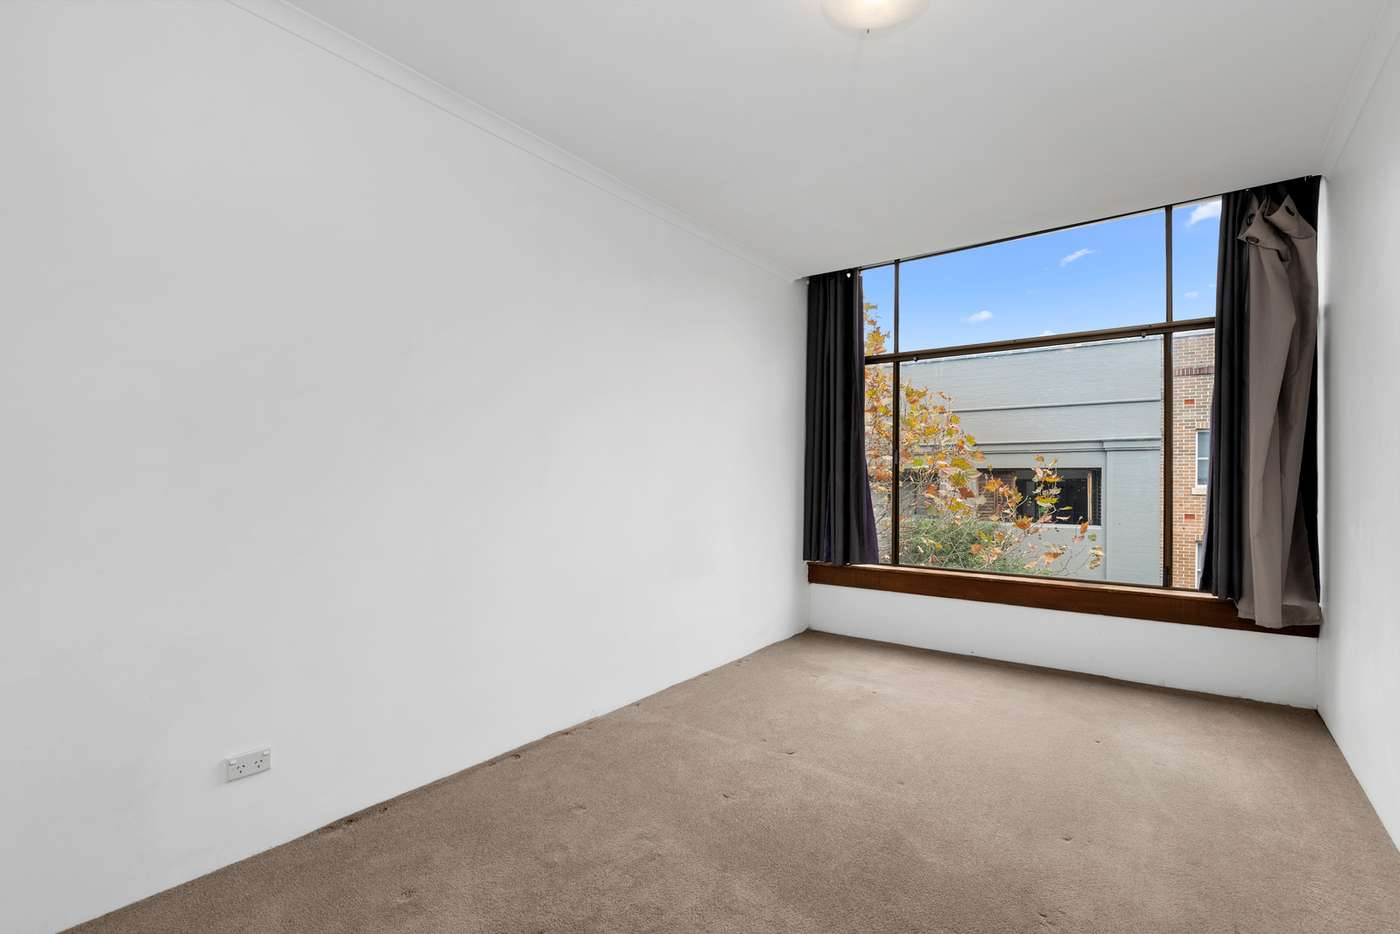 Sixth view of Homely apartment listing, 46/57-75 Buckland Street, Chippendale NSW 2008